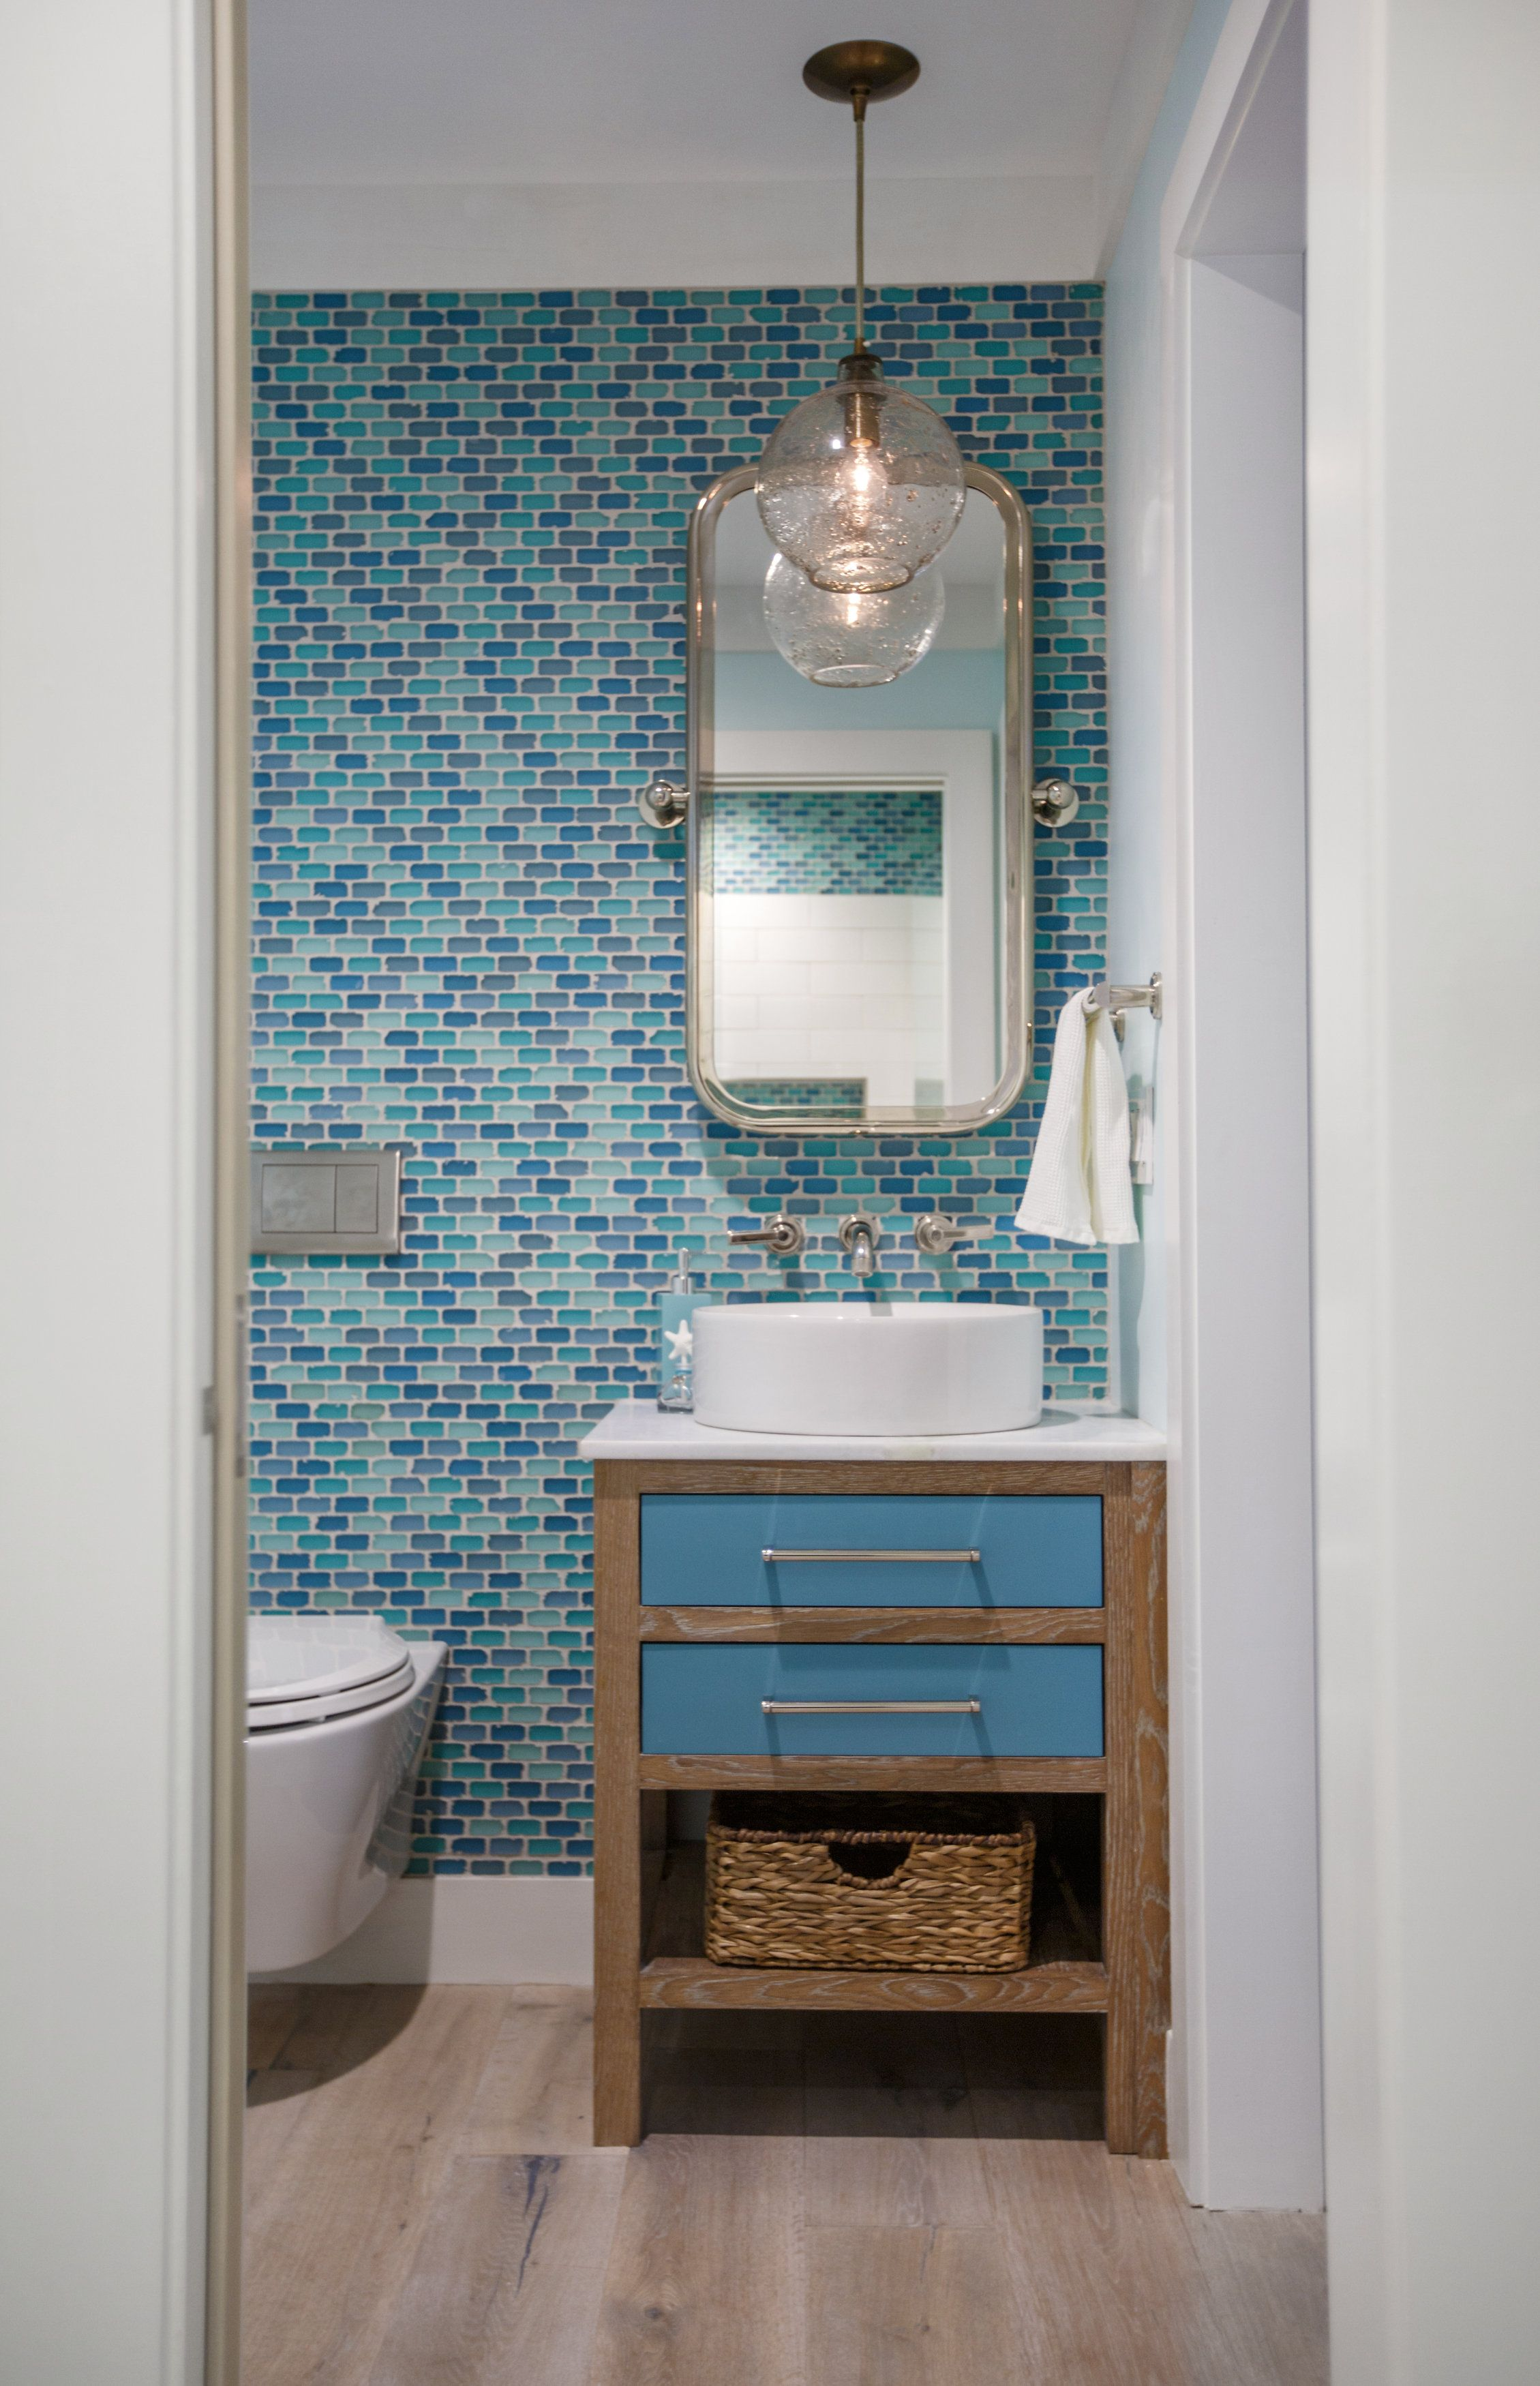 20 Beach Bathroom Decor Ideas - Beach Themed Bathroom Decorating